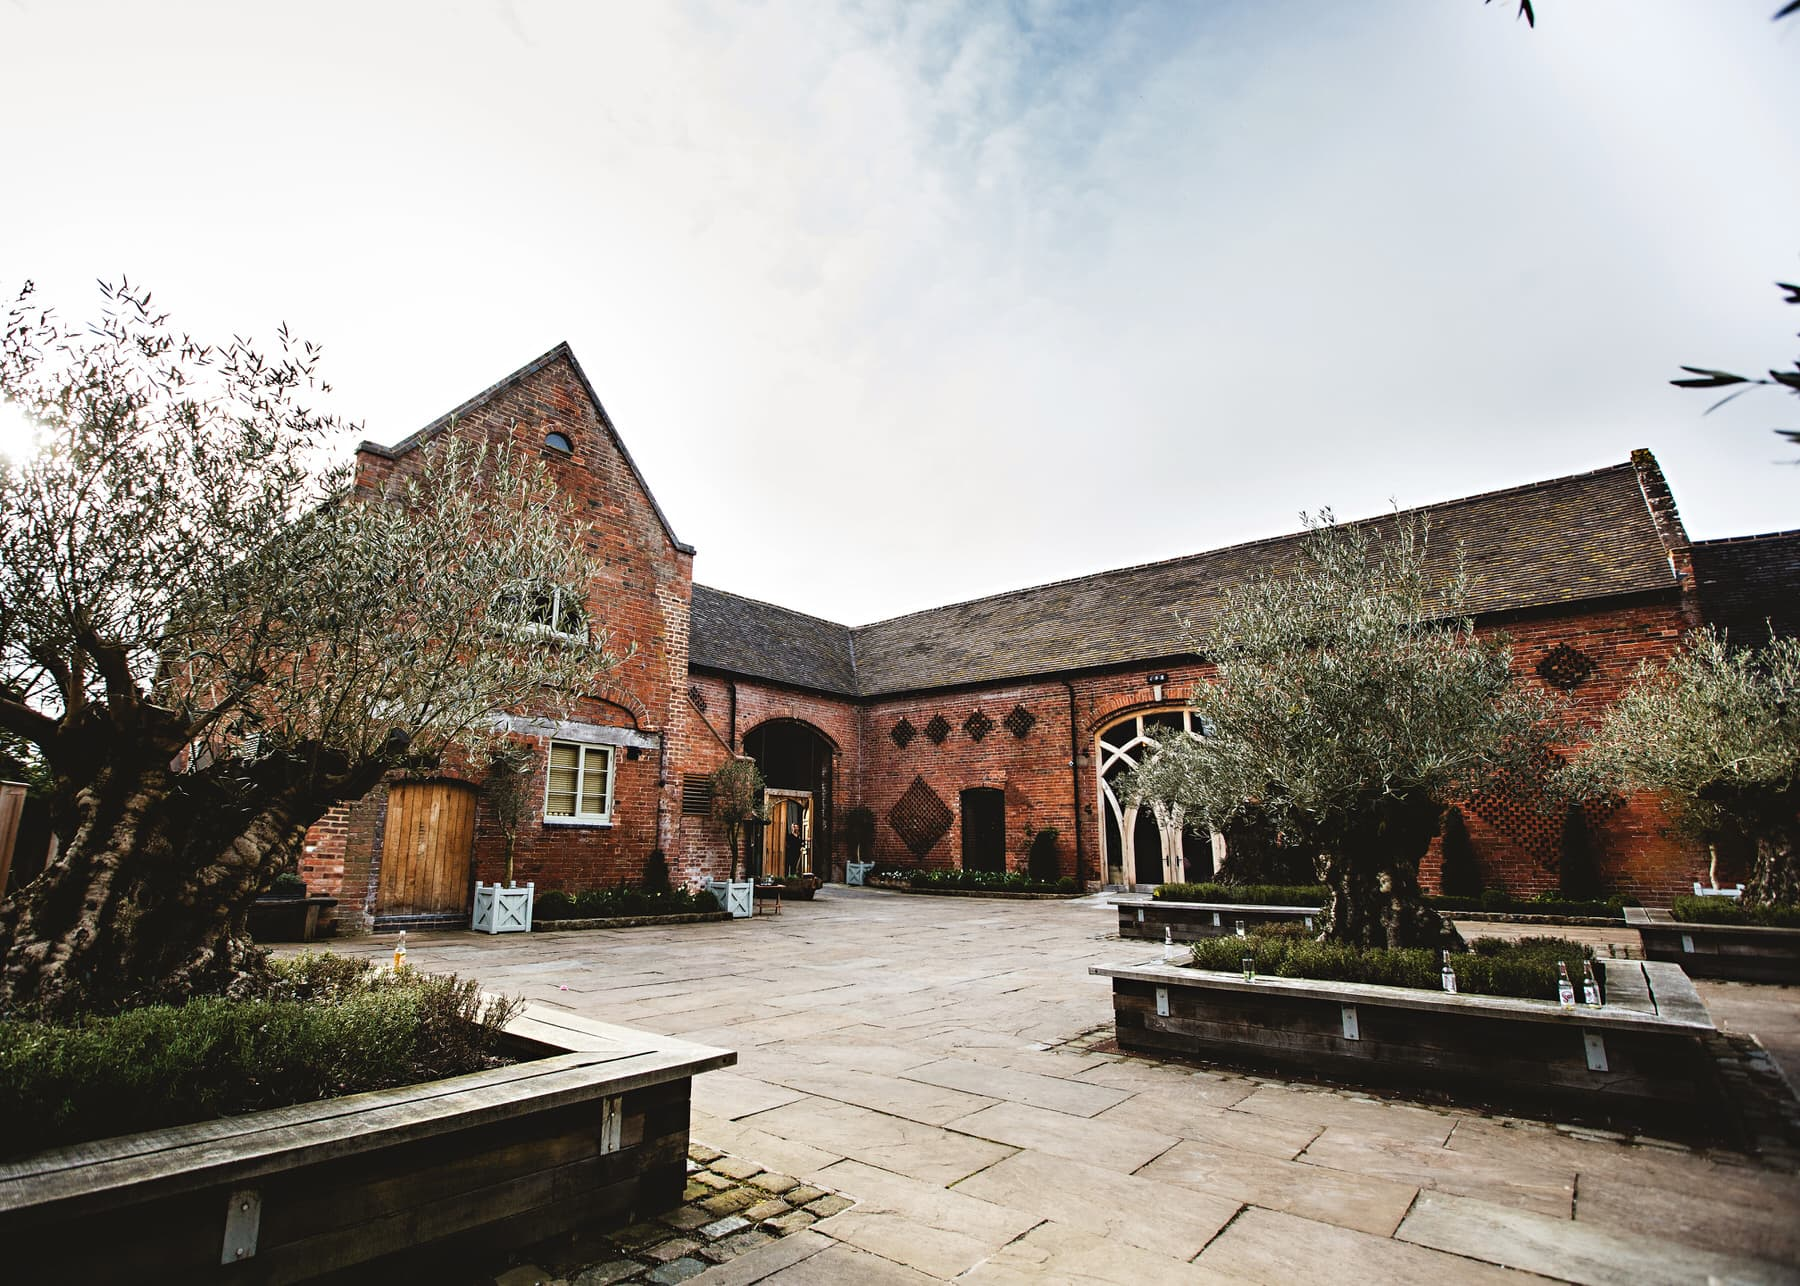 the olive trees in the courtyard